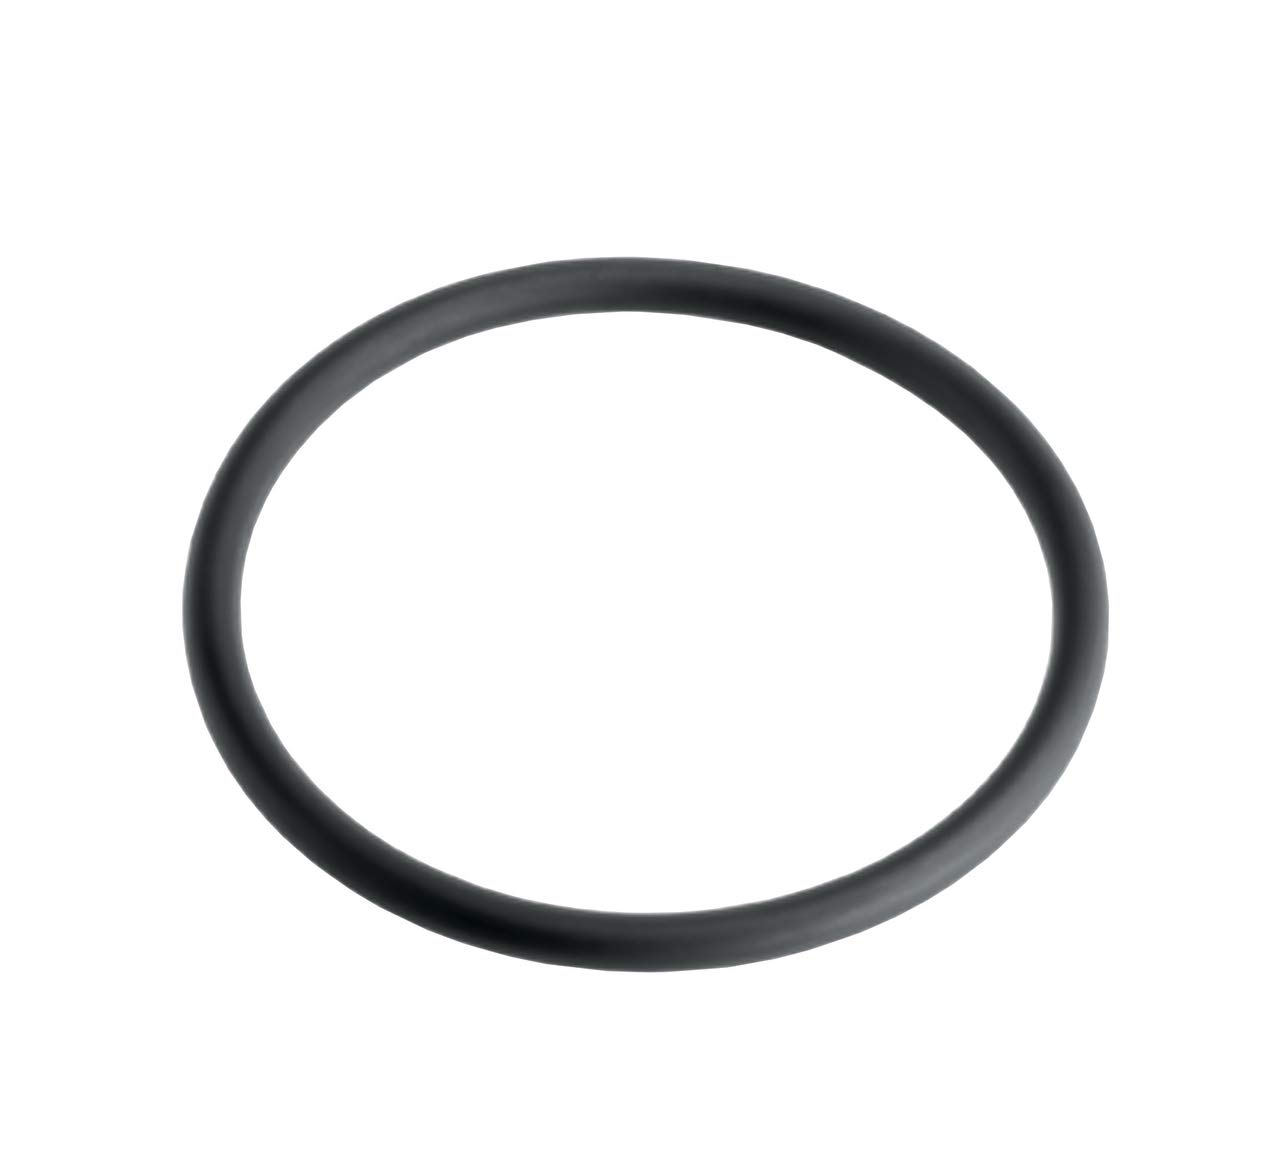 Dupont KALREZ AS-568 429/3018 Perfluoroelastomer O-Ring